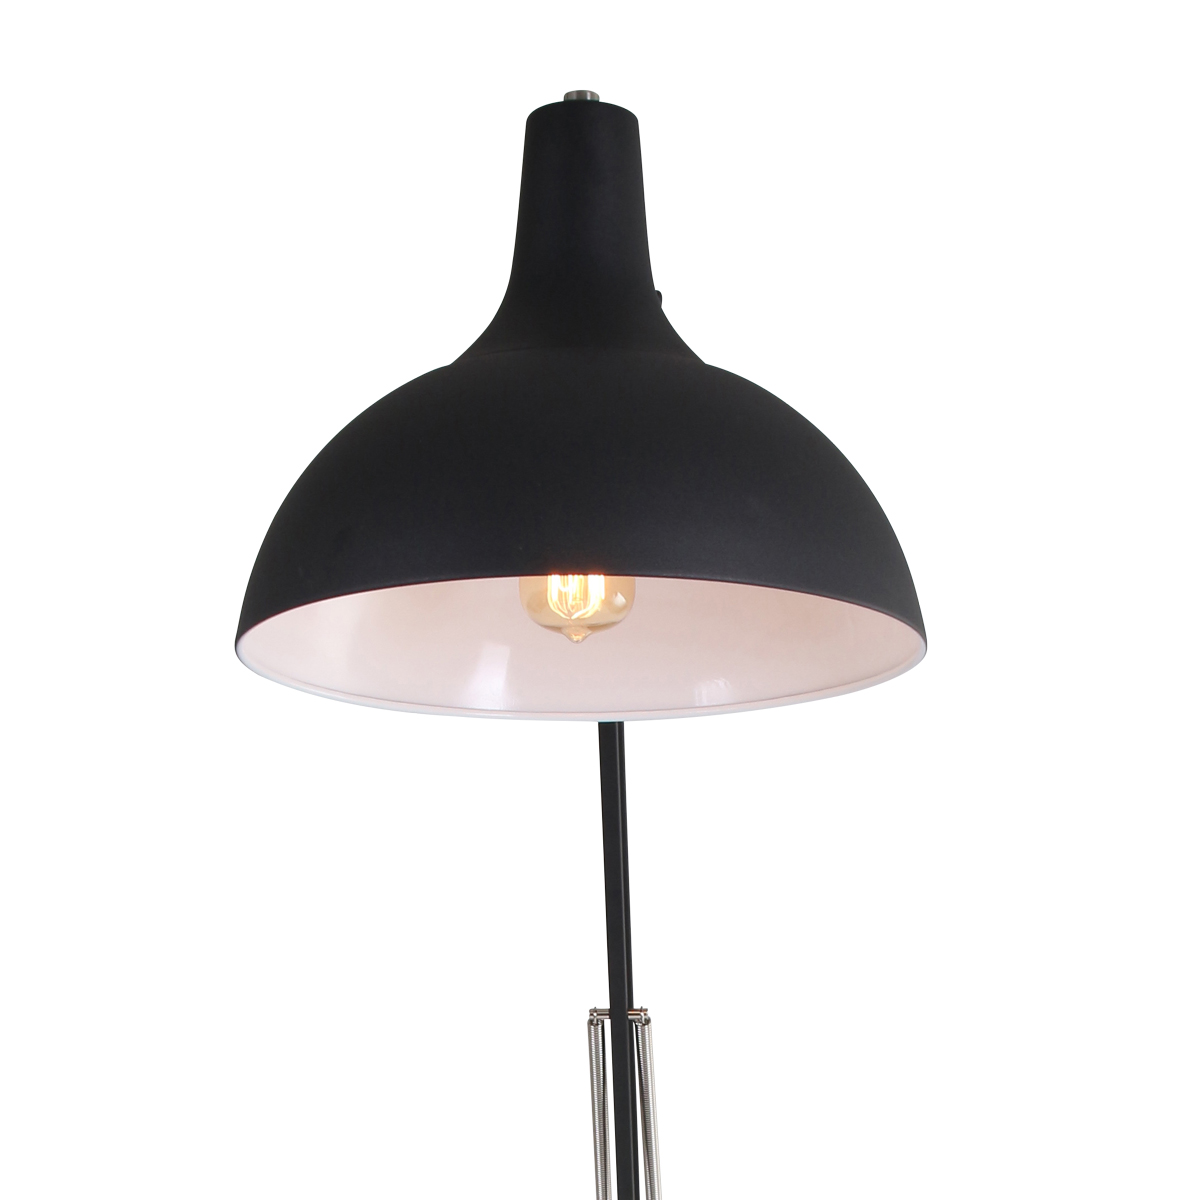 giga industrielle stehlampe schwarz stehlampen online. Black Bedroom Furniture Sets. Home Design Ideas